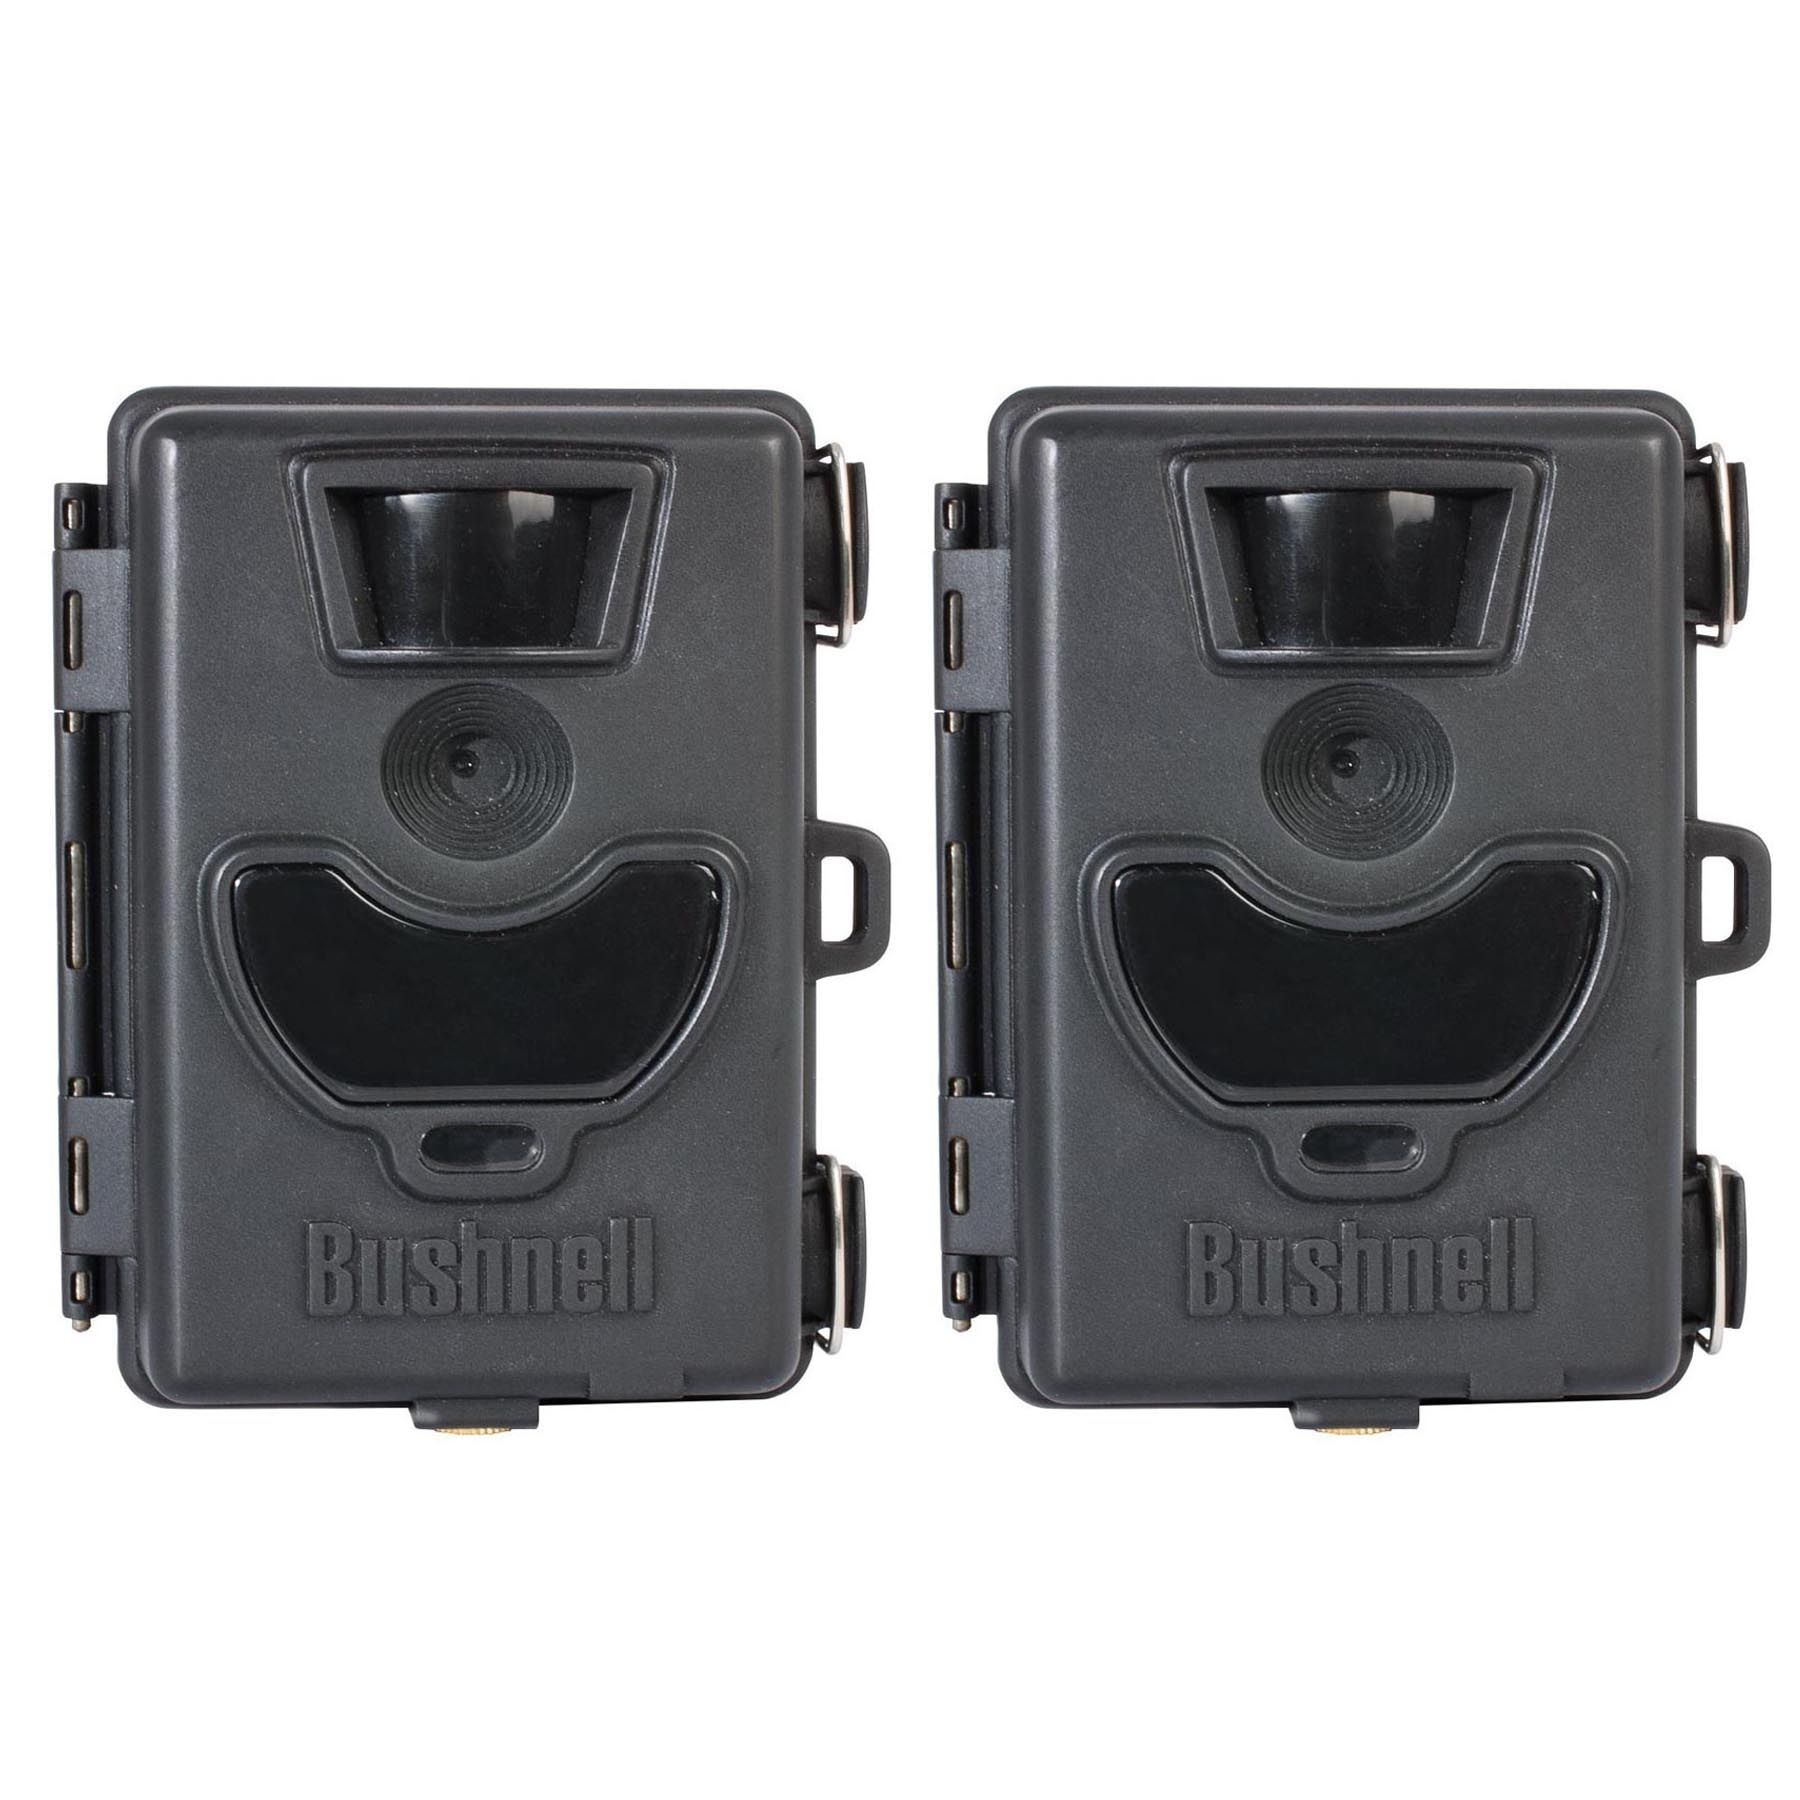 Bushnell 6MP Night Vision Surveillance Camera / Trail Cam - 2-Pack